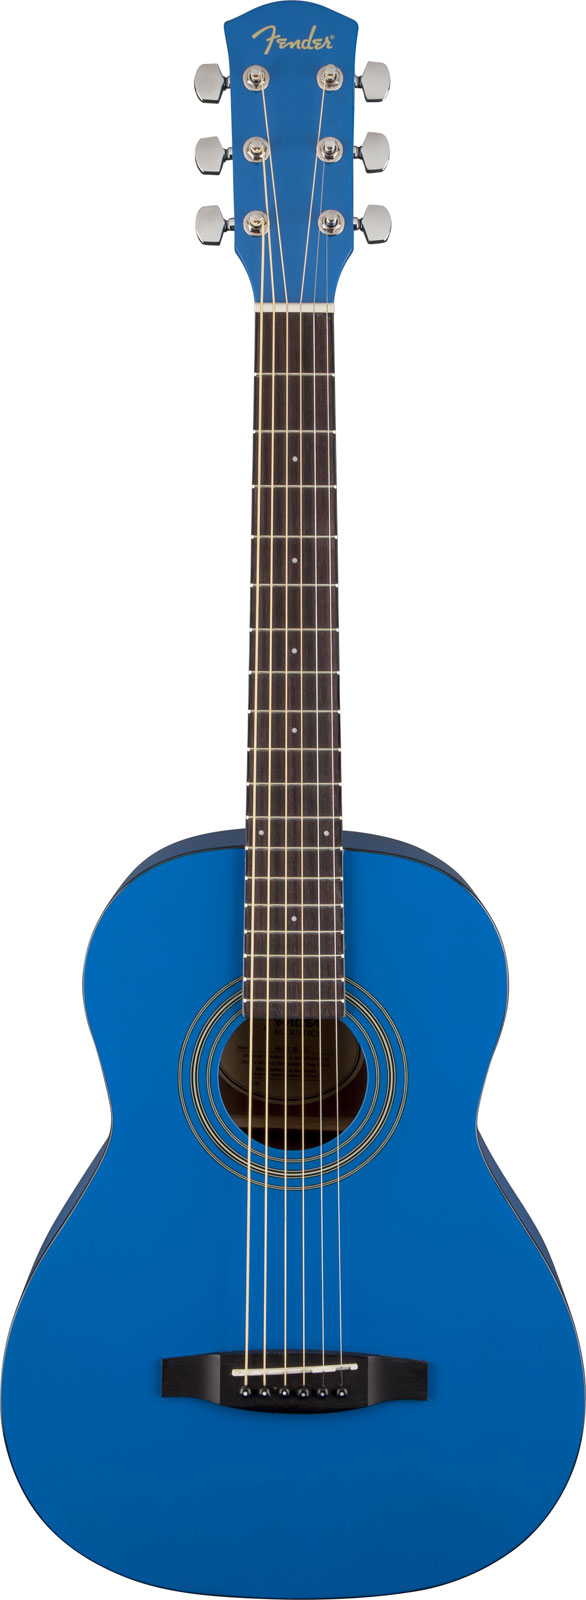 FENDER MA 1 3/4 STEEL STRING GLOSS BLUE